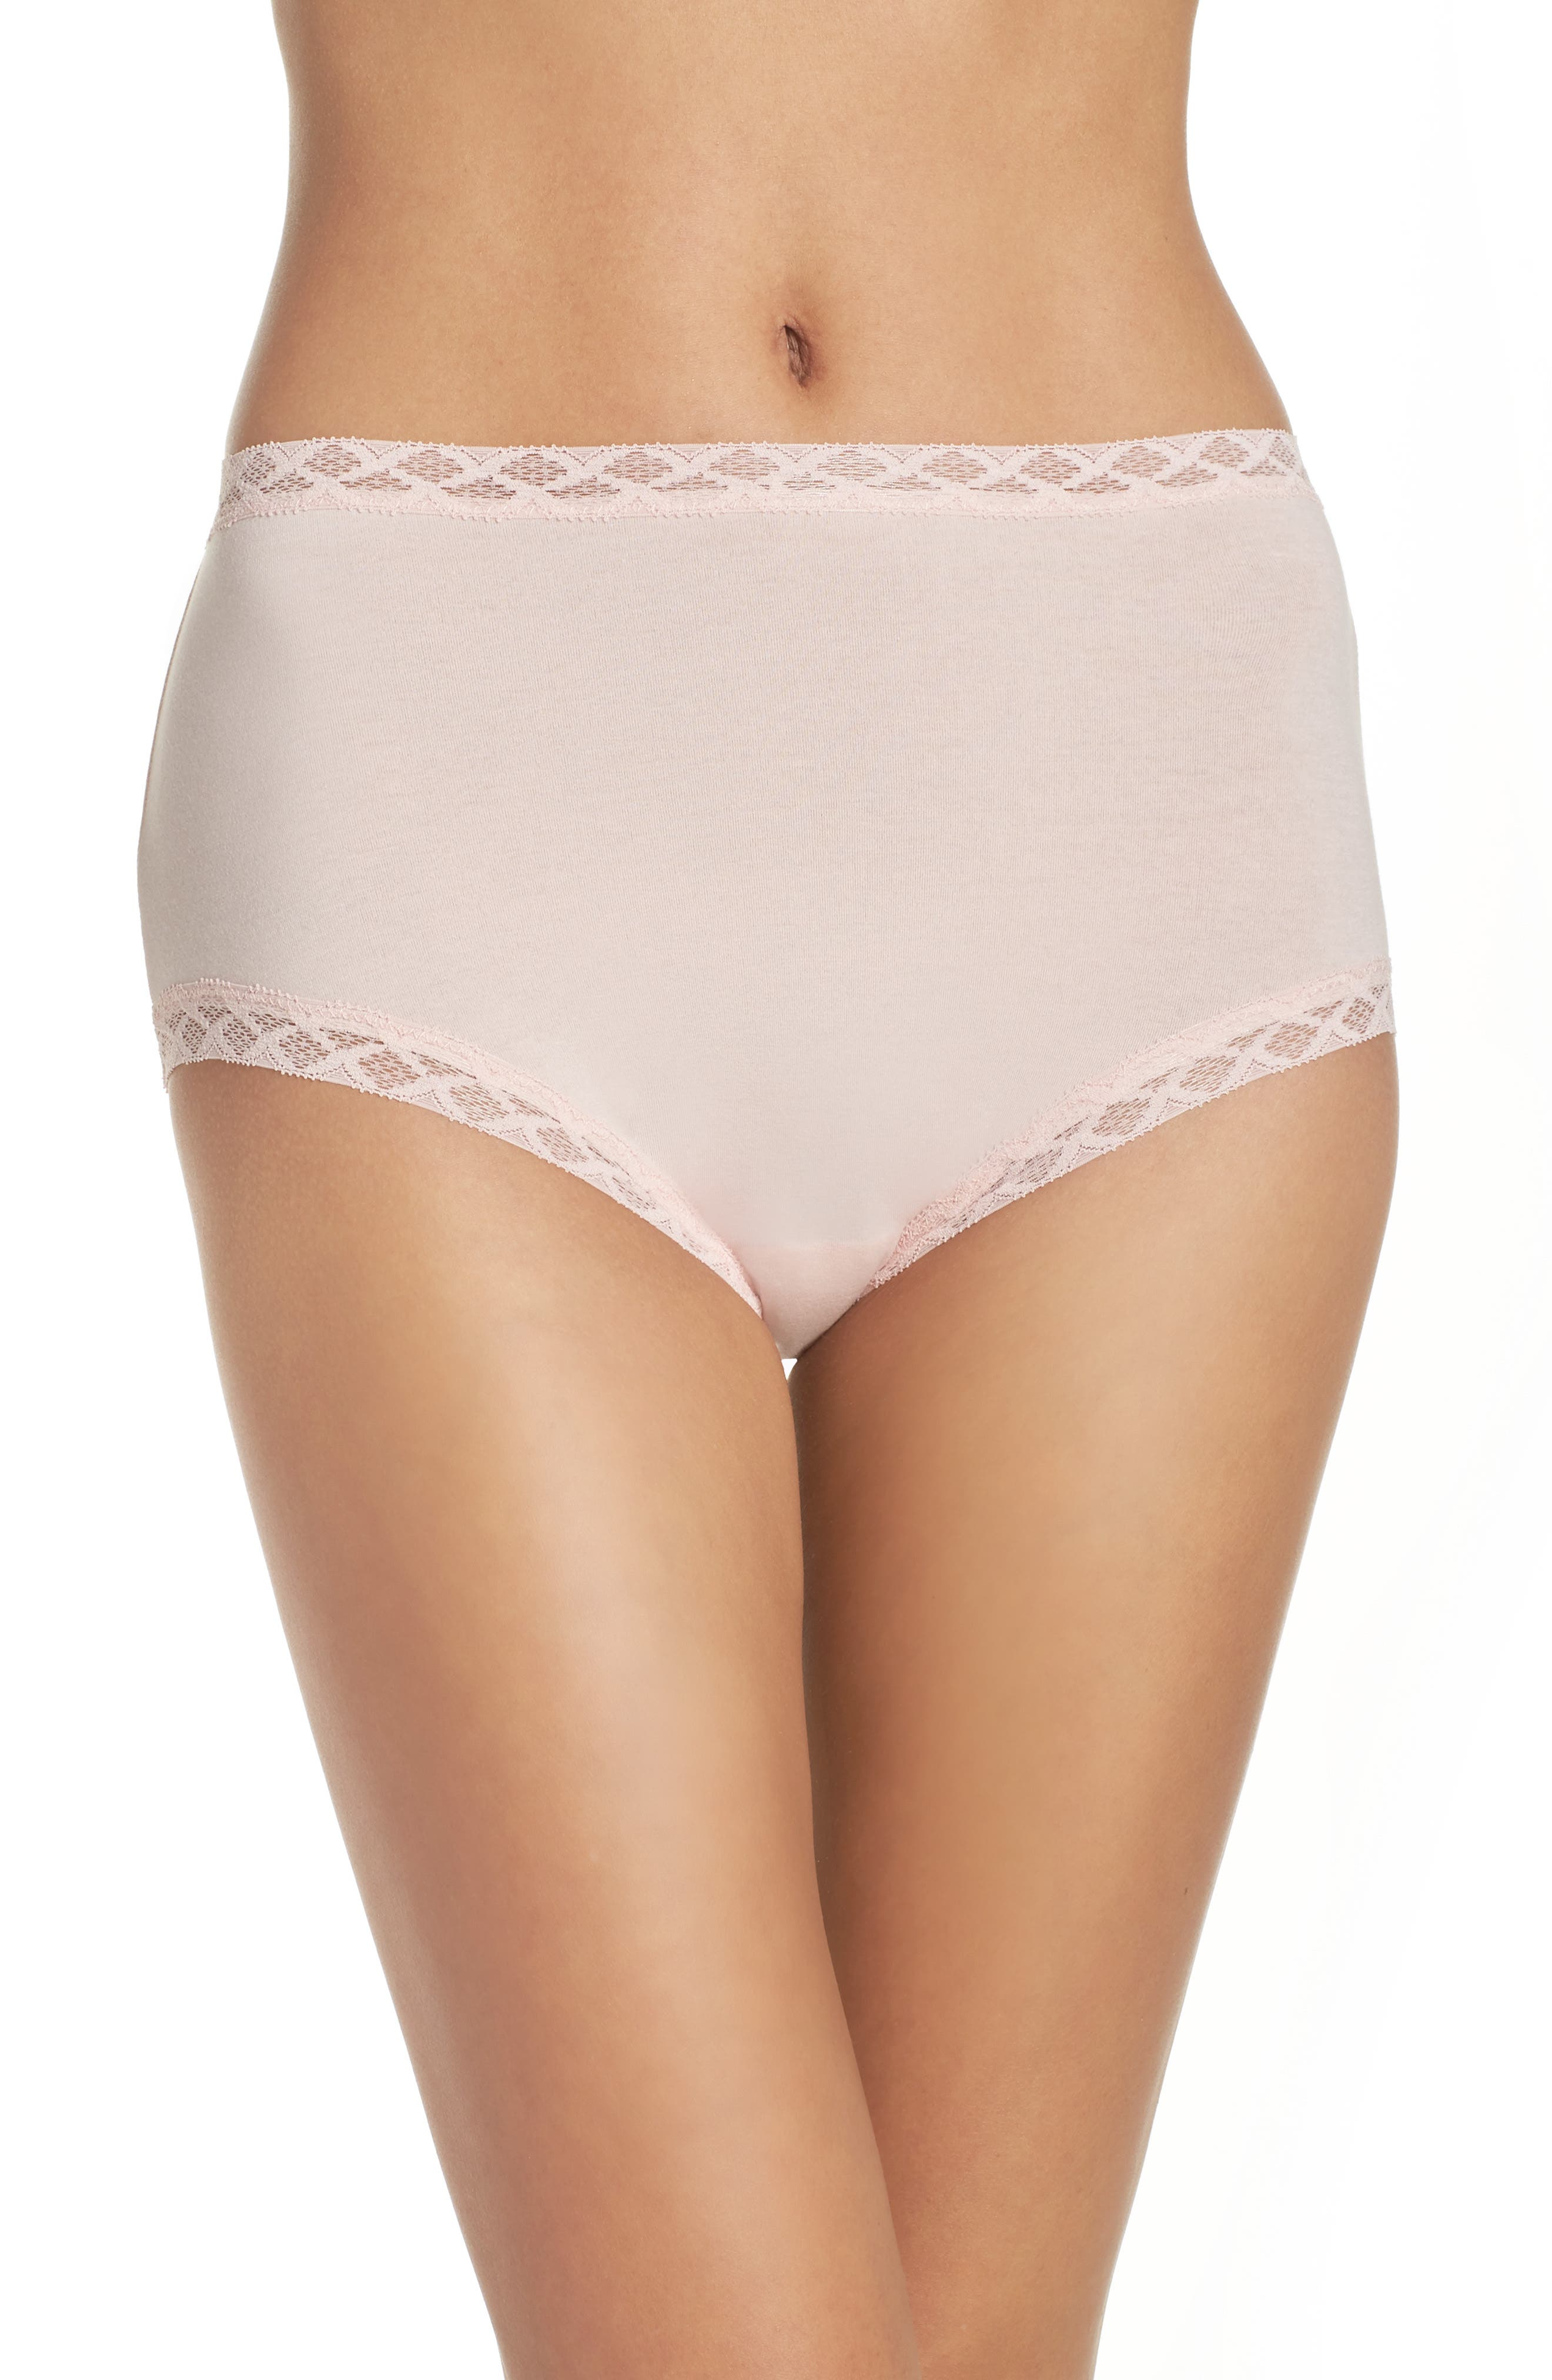 Alternate Image 1 Selected - Natori Bliss Cotton Full Brief (3 for $45)